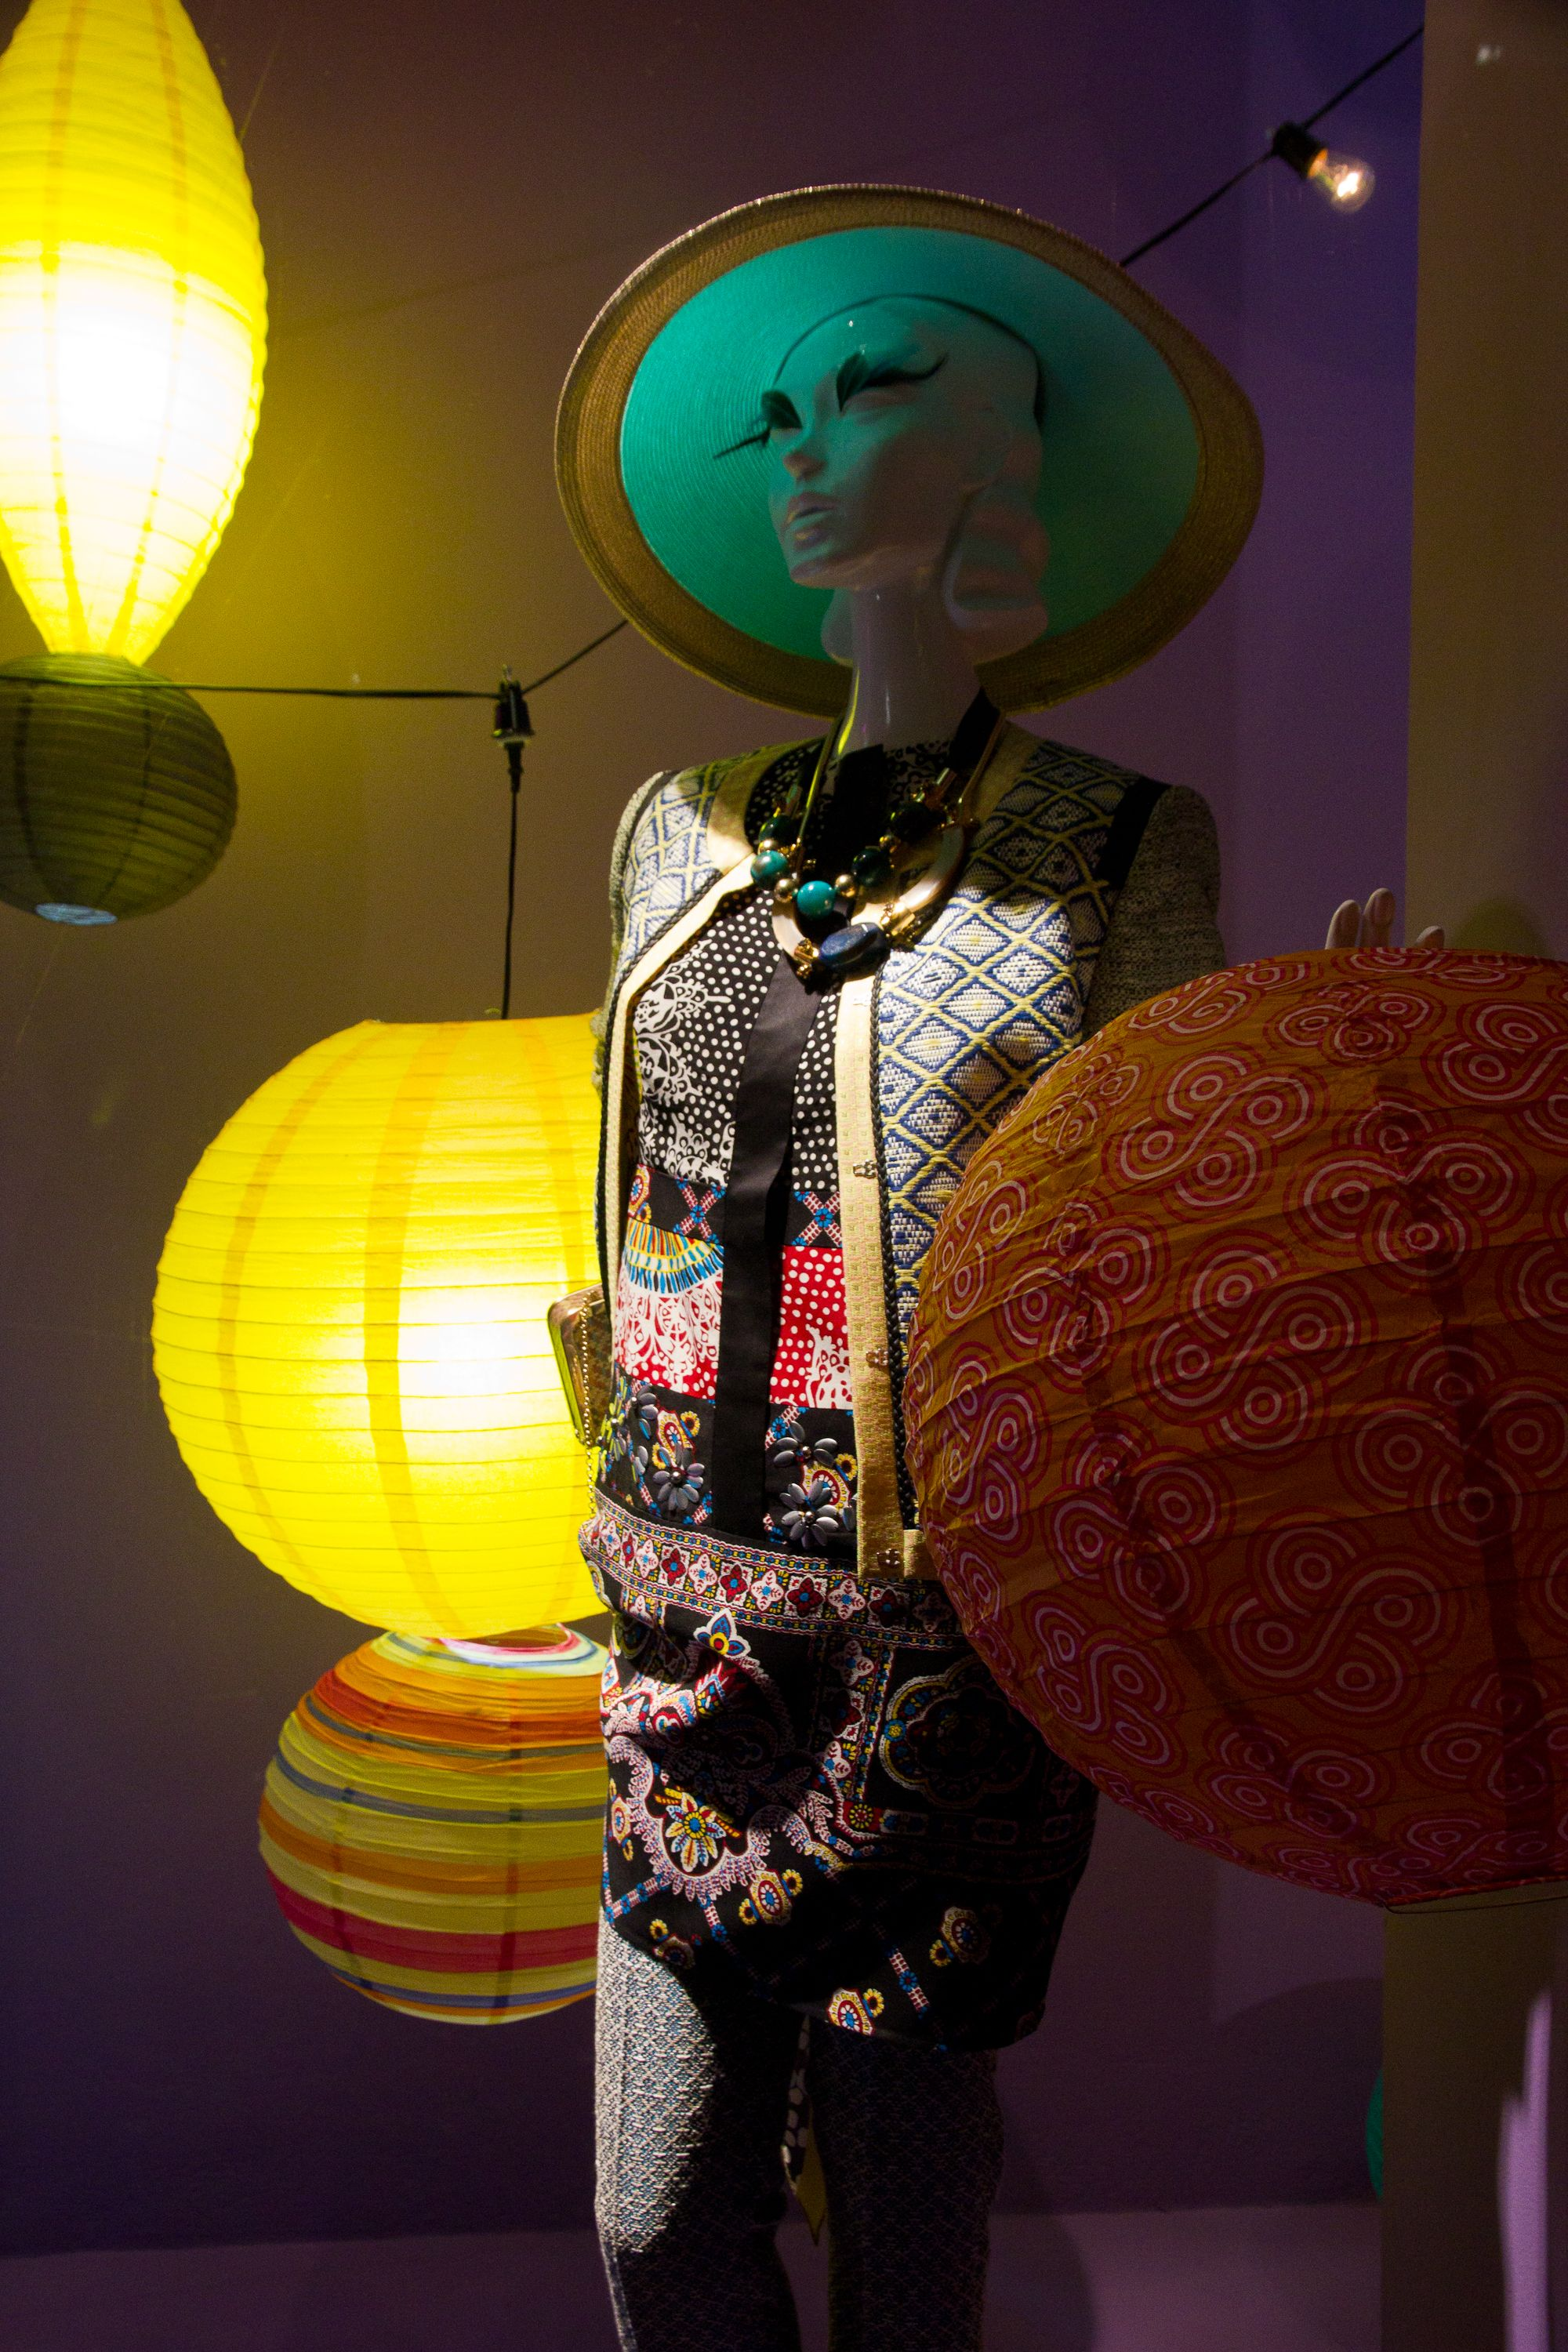 eastern passages inspired #holtswindows #spring